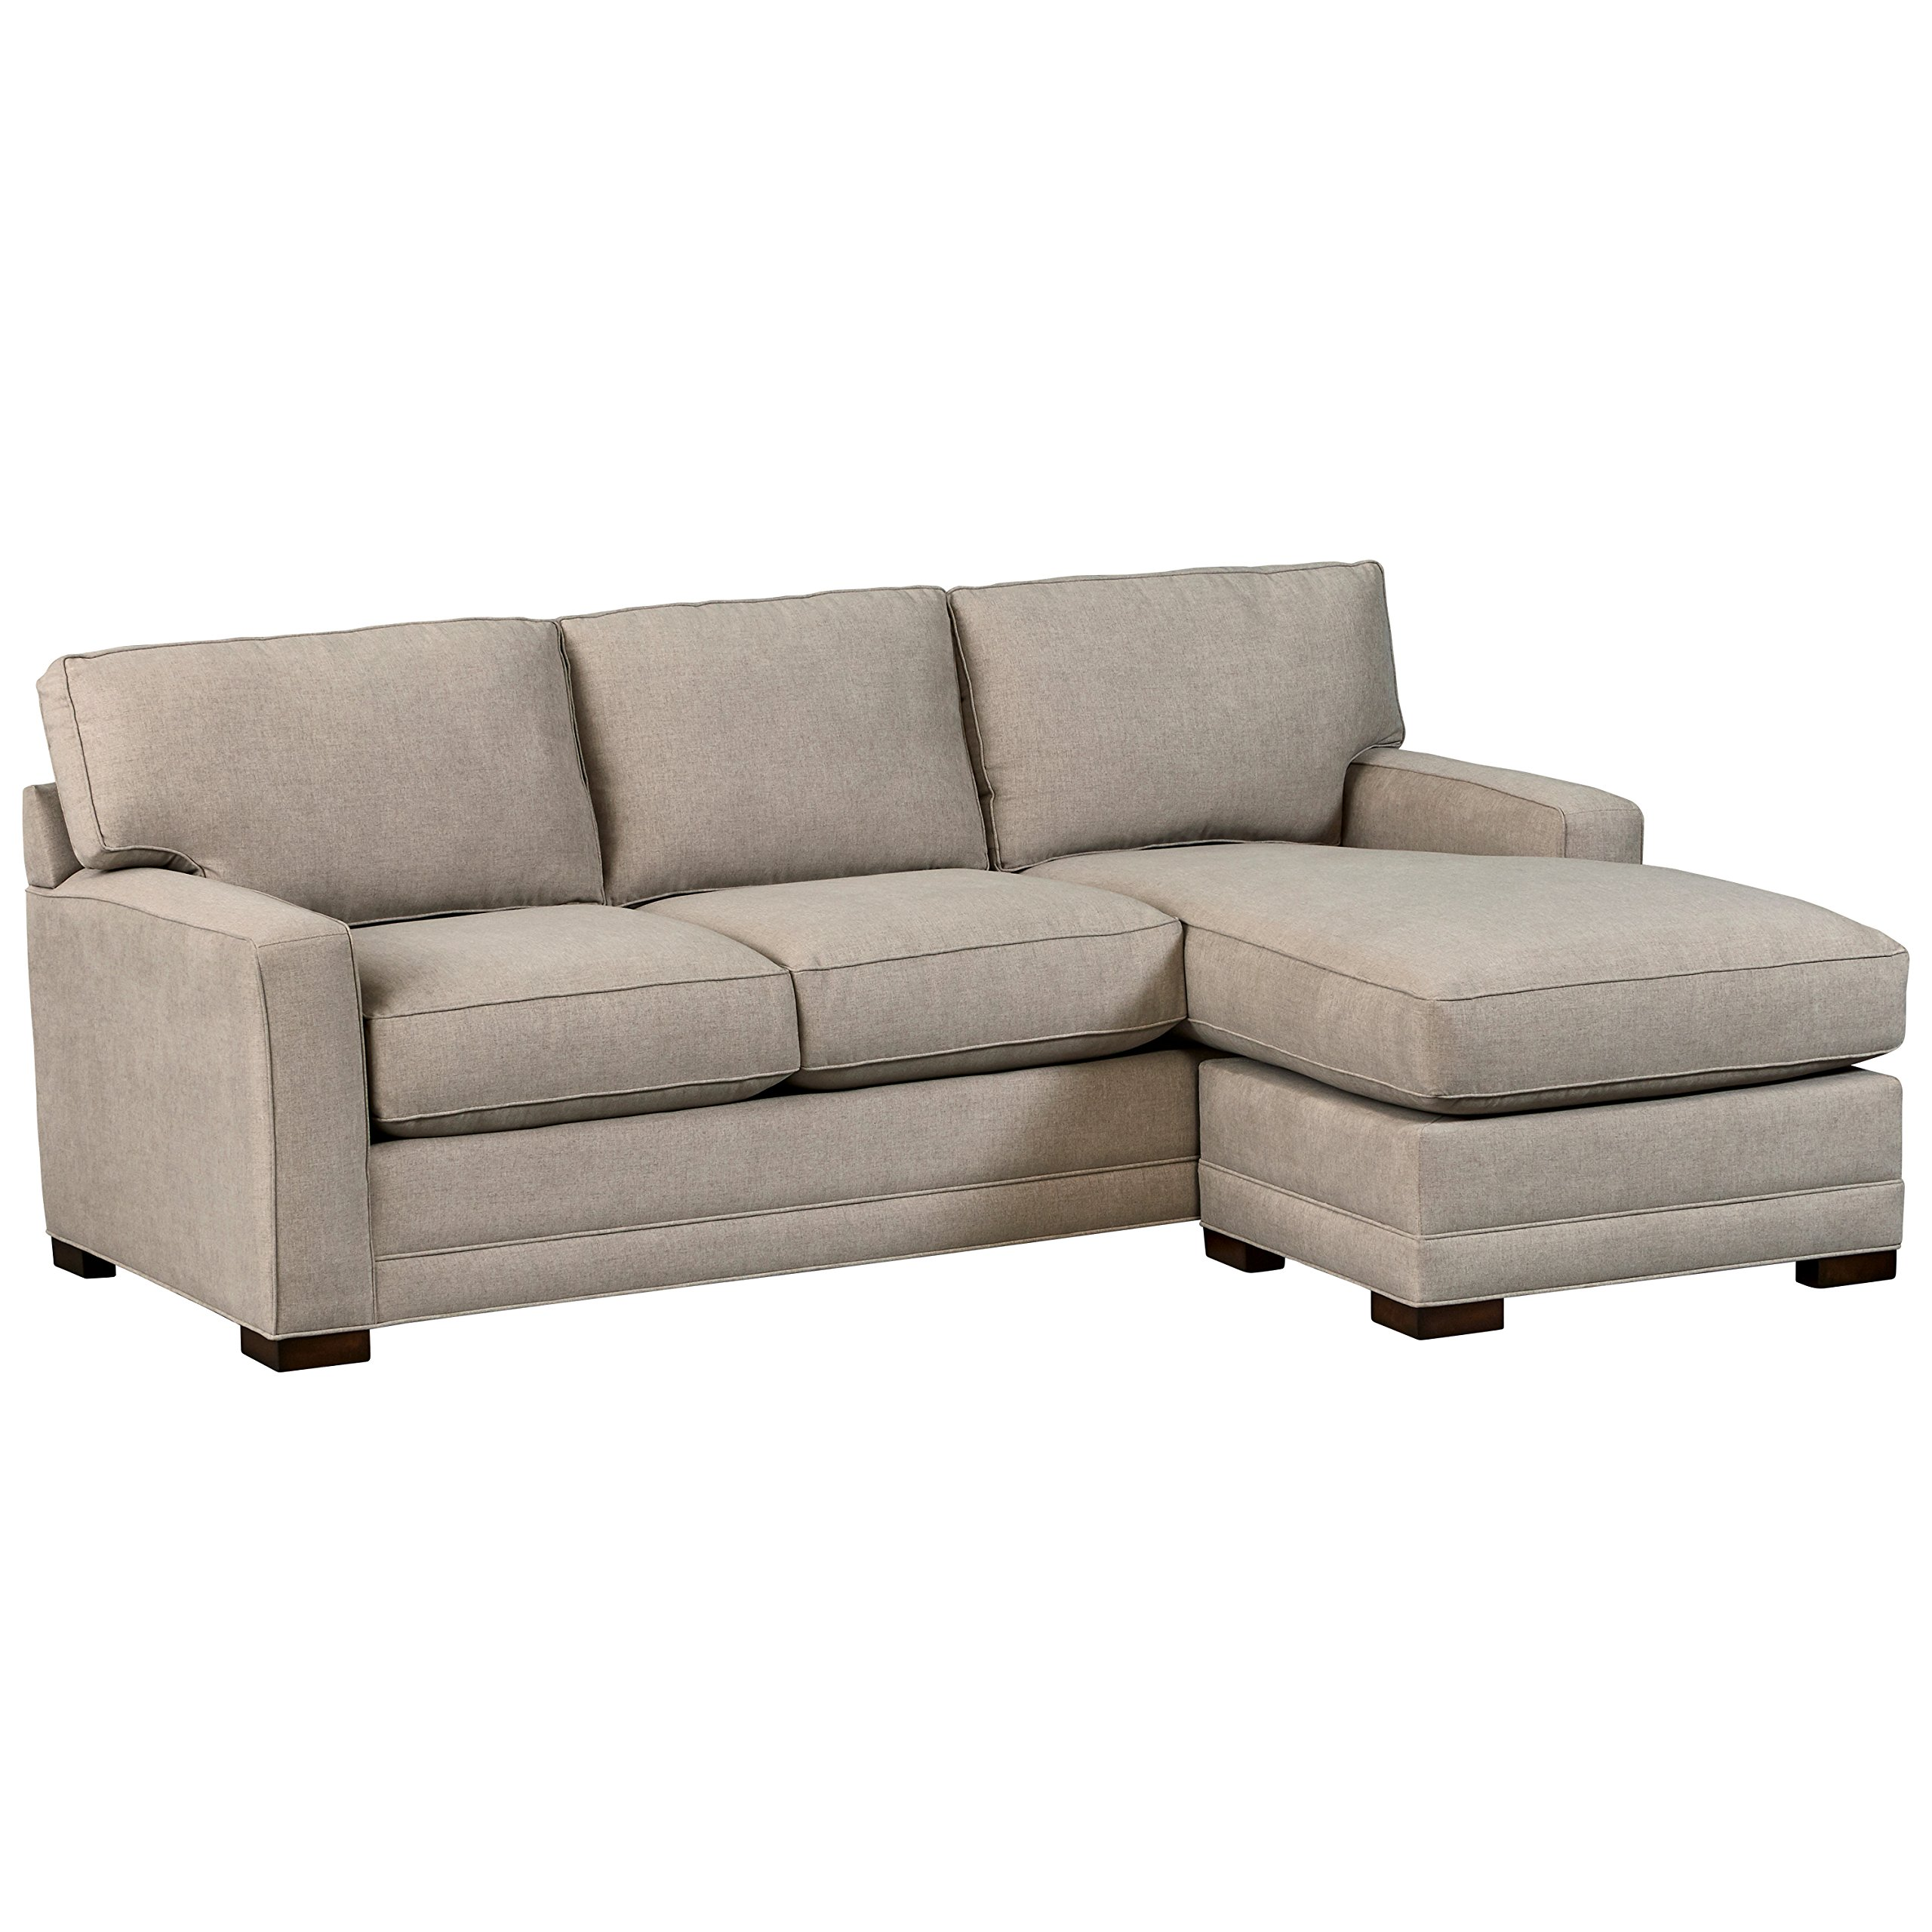 Awe Inspiring Best Rated In Sofas Couches Helpful Customer Reviews Machost Co Dining Chair Design Ideas Machostcouk